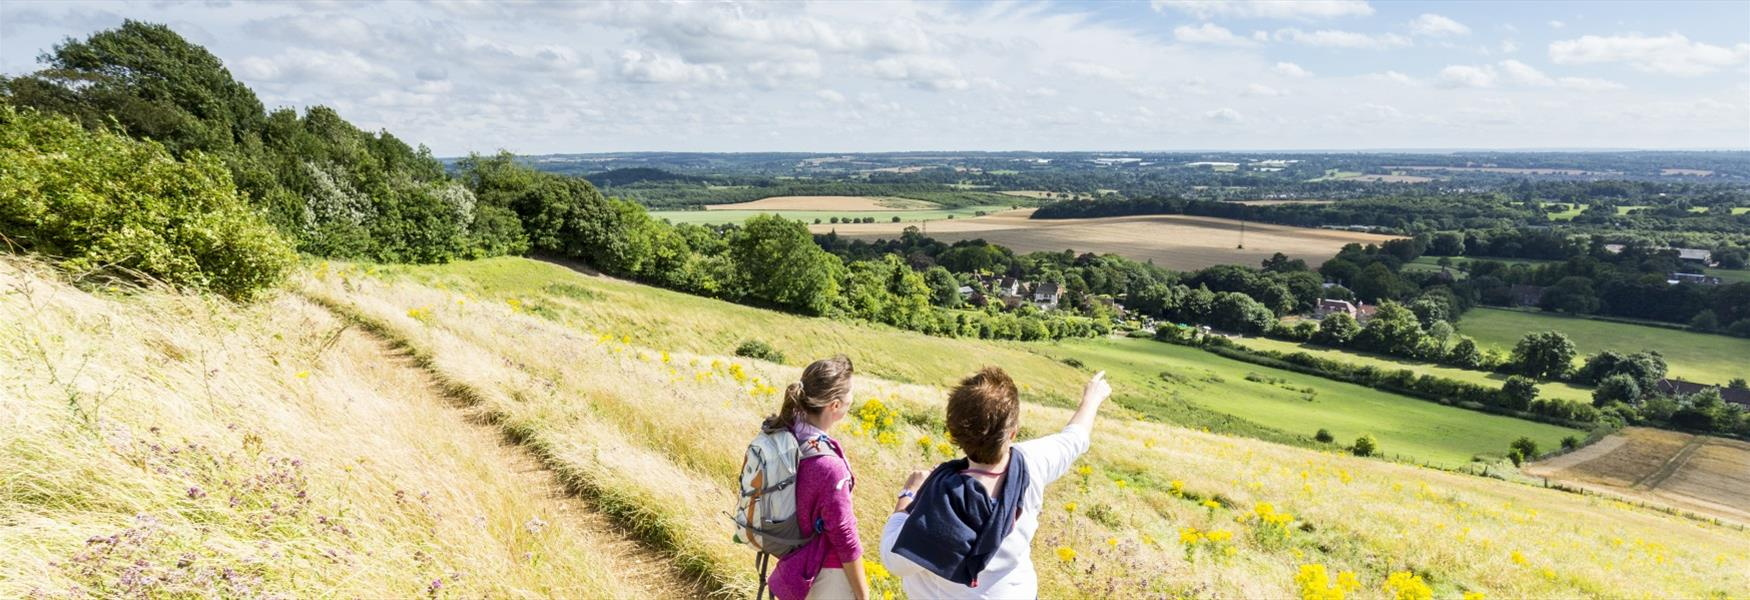 Walking on the North Downs